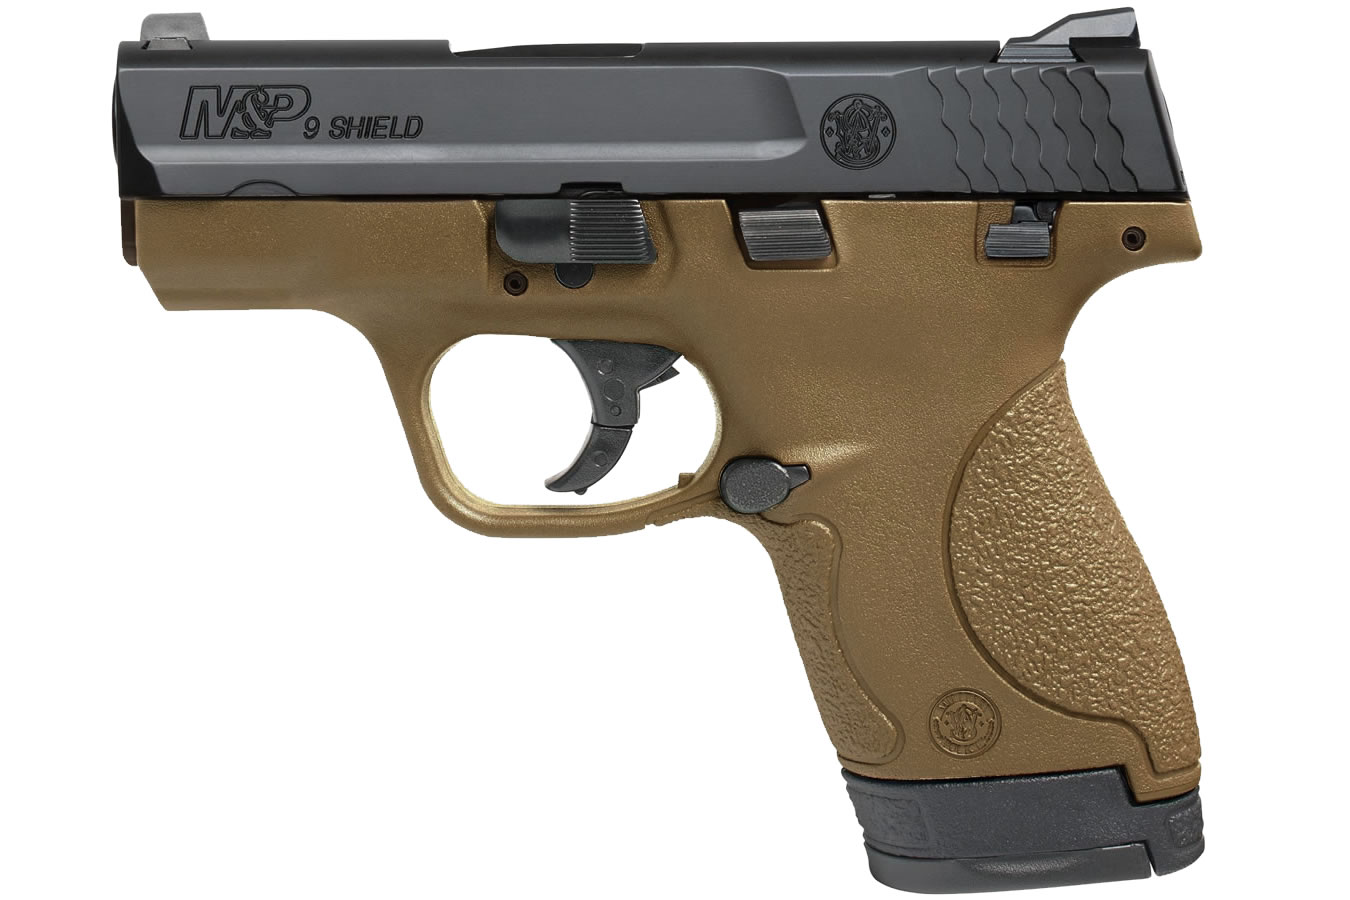 MP9 SHIELD 9MM FDE WITH THUMB SAFETY